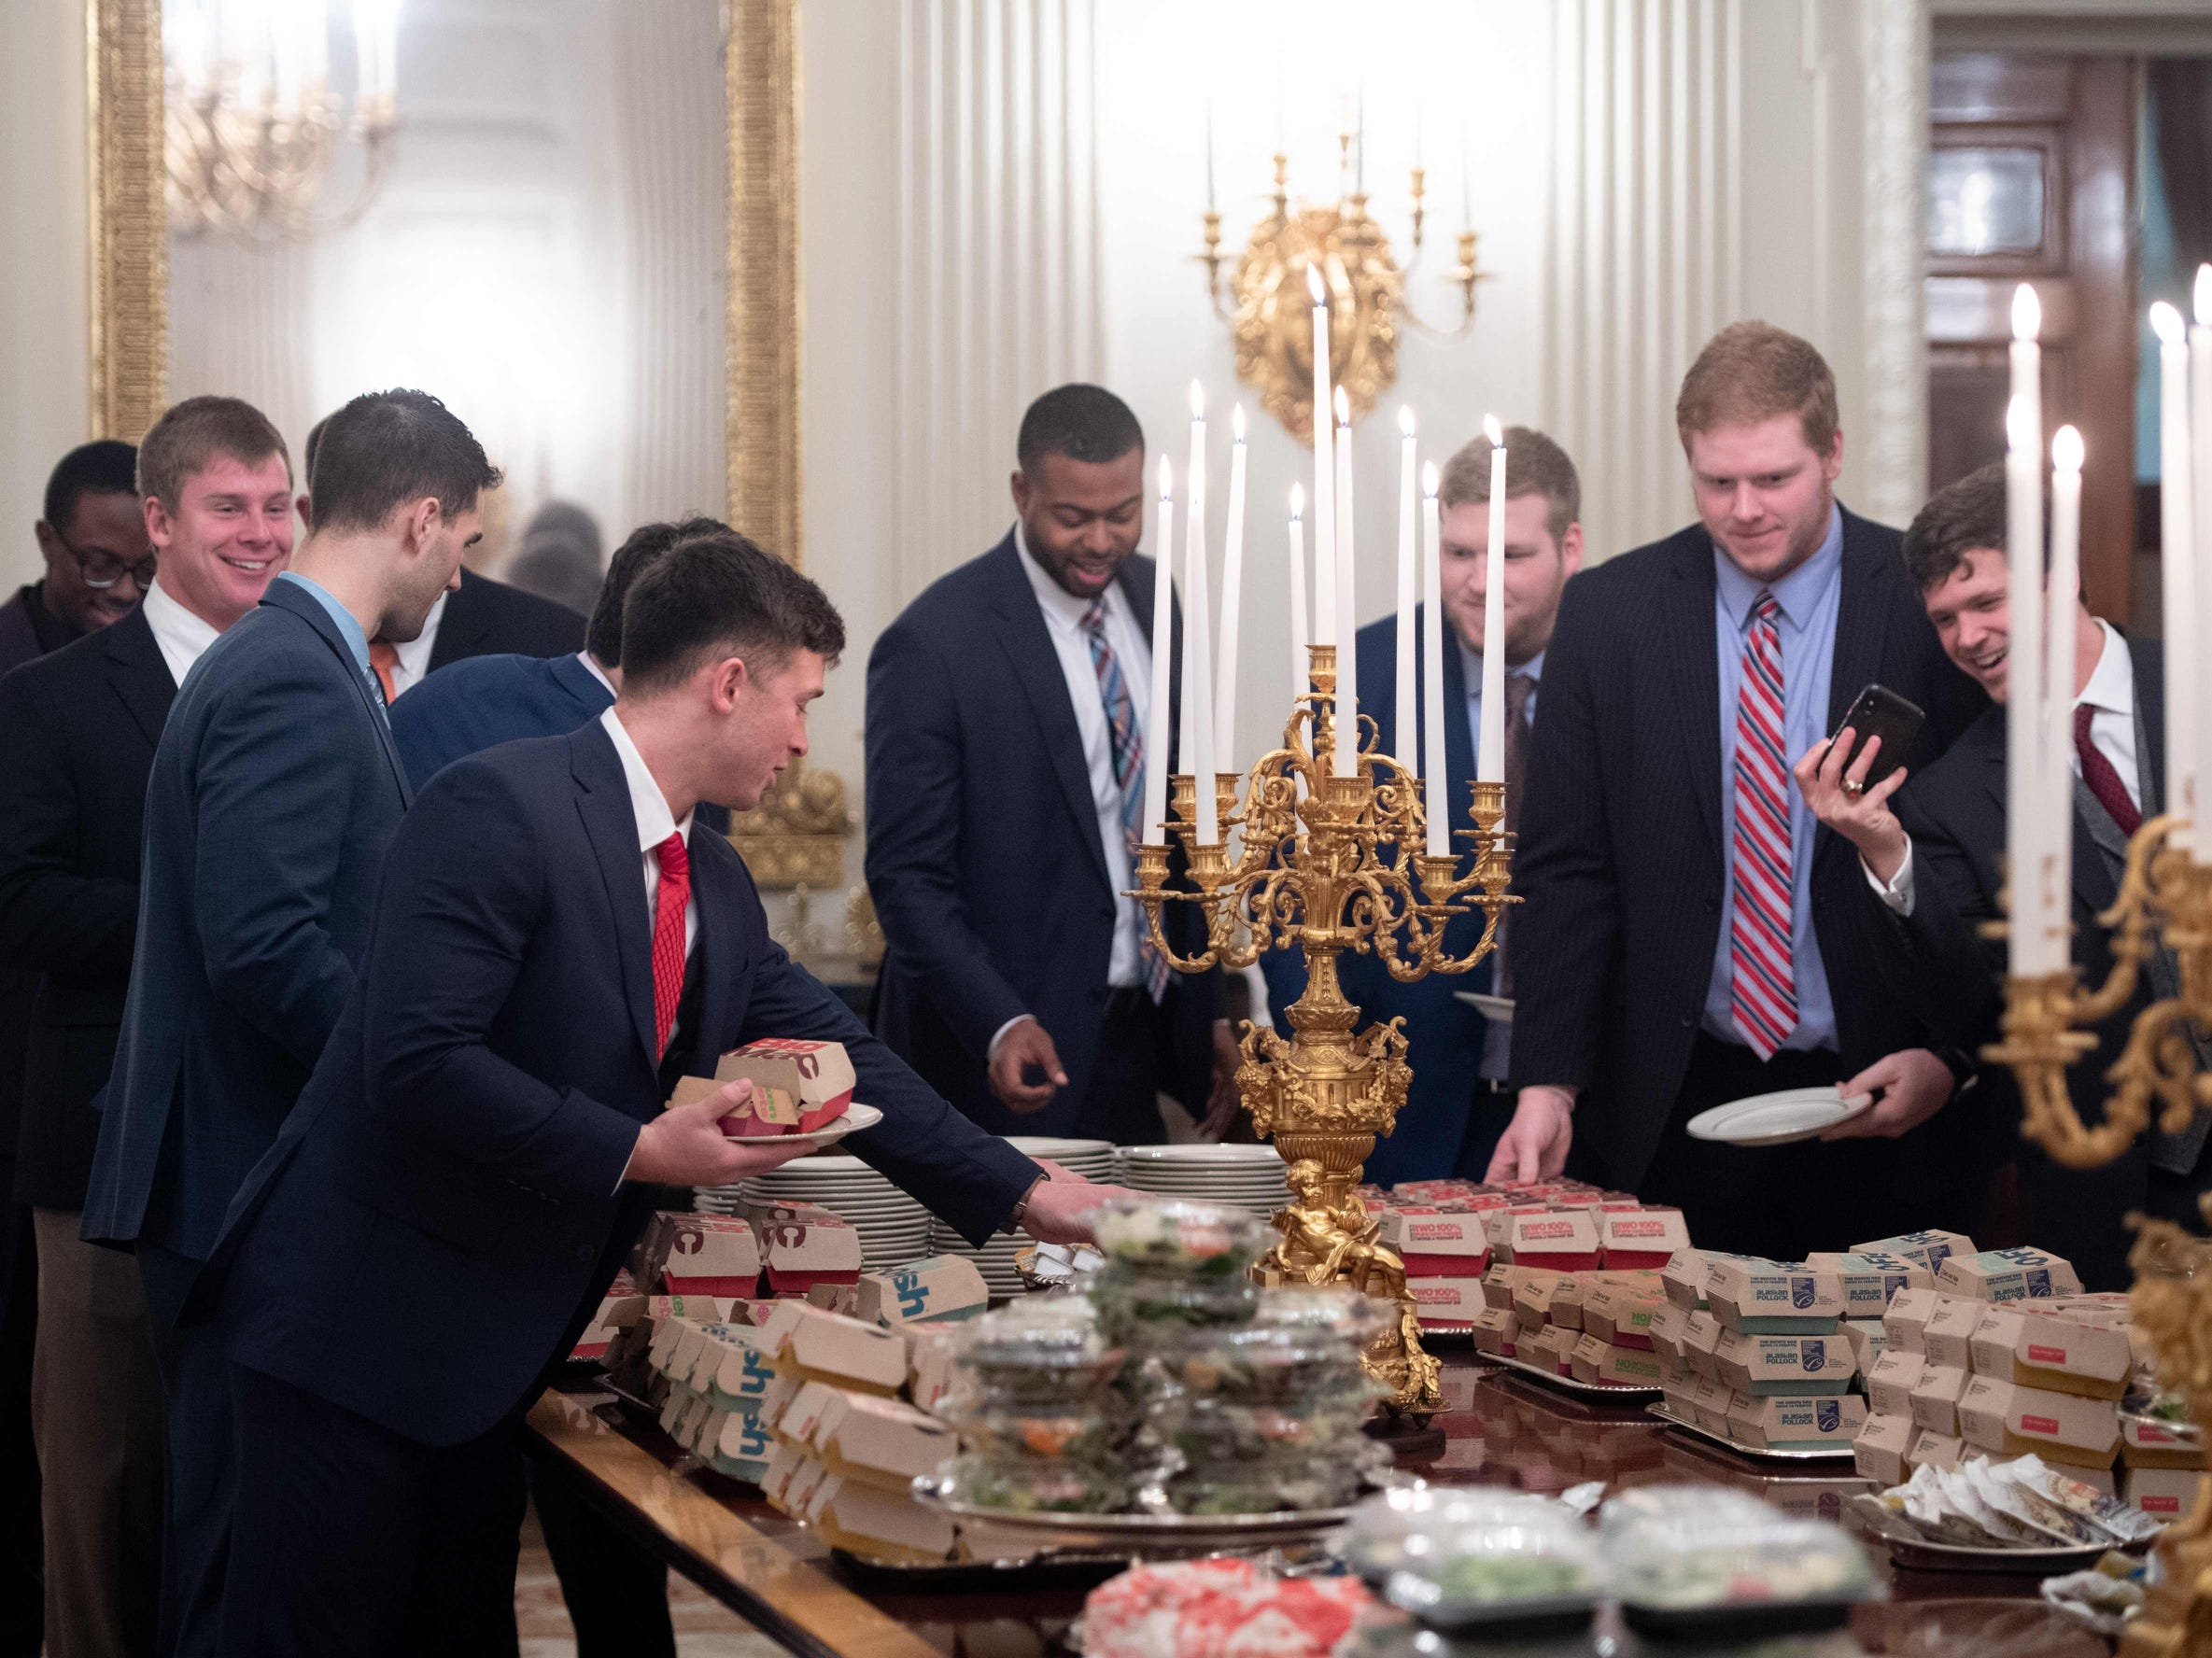 Guests select fast food Donald Trump purchased for a ceremony honoring the 2018 College Football Playoff National Champion Clemson Tigers in the State Dining Room of the White House, Monday.